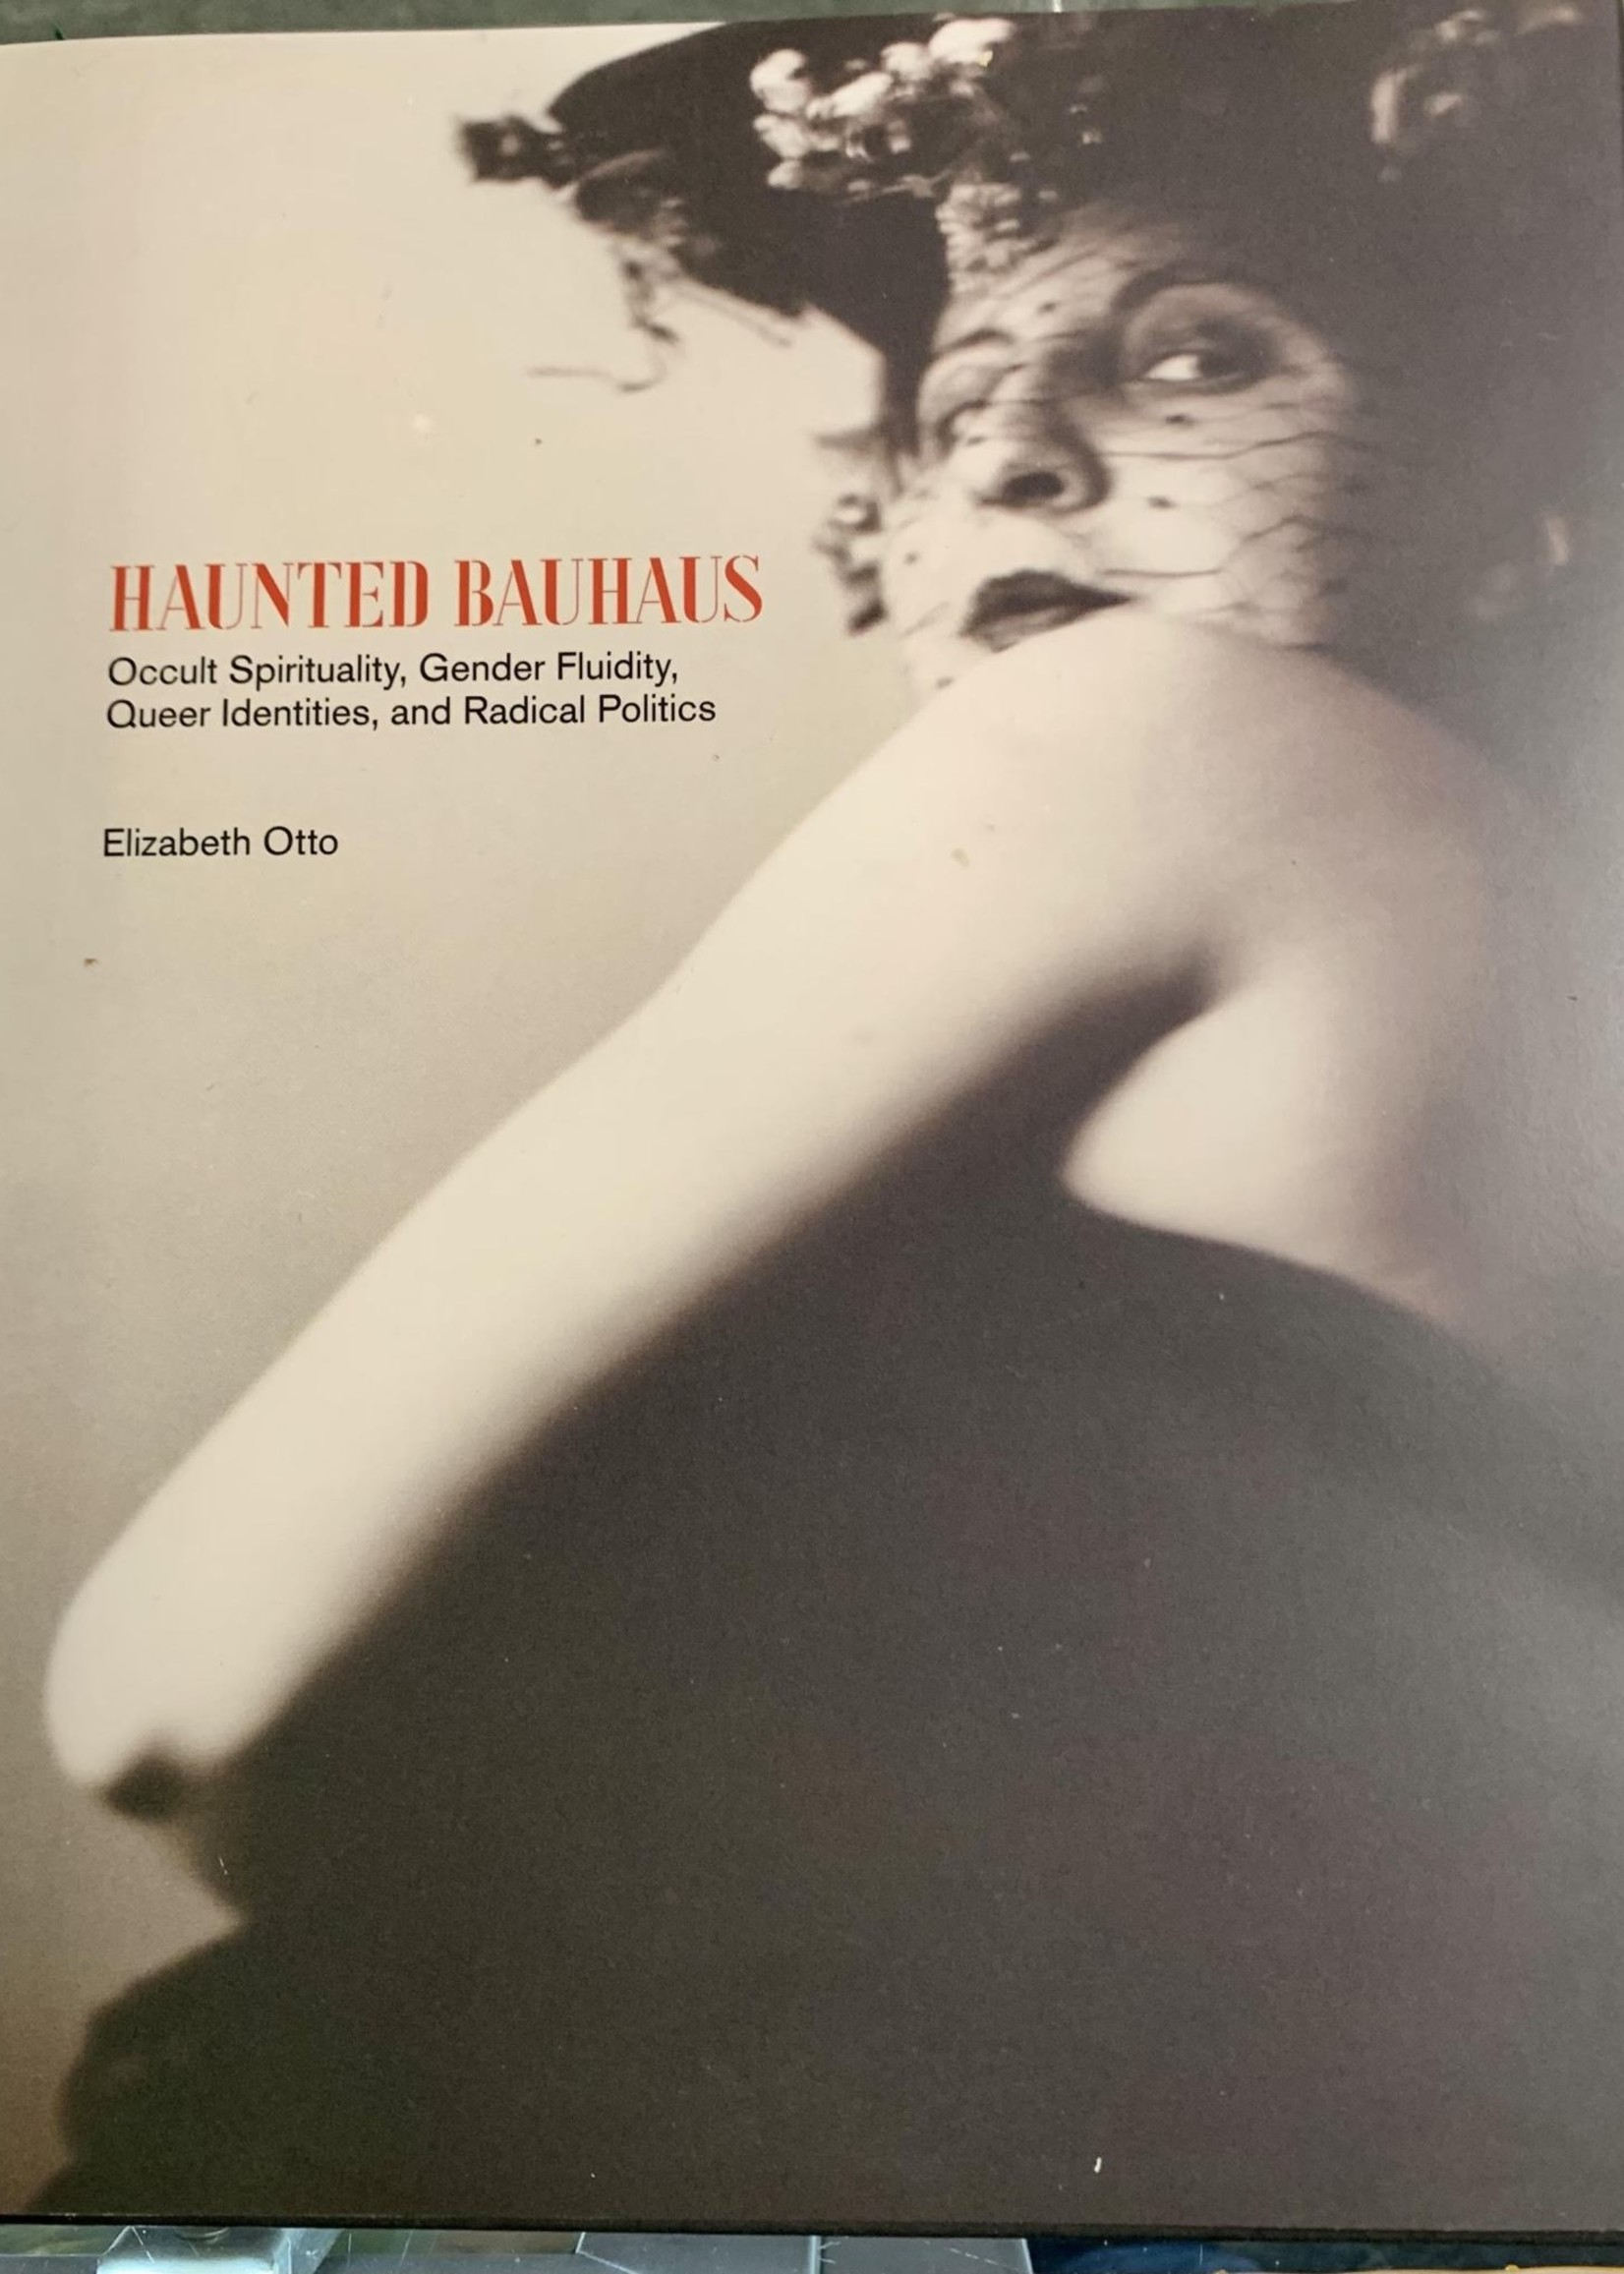 Haunted Bauhaus OCCULT SPIRITUALITY, GENDER FLUIDITY, QUEER IDENTITIES, AND RADICAL POLITICS - By ELIZABETH OTTO